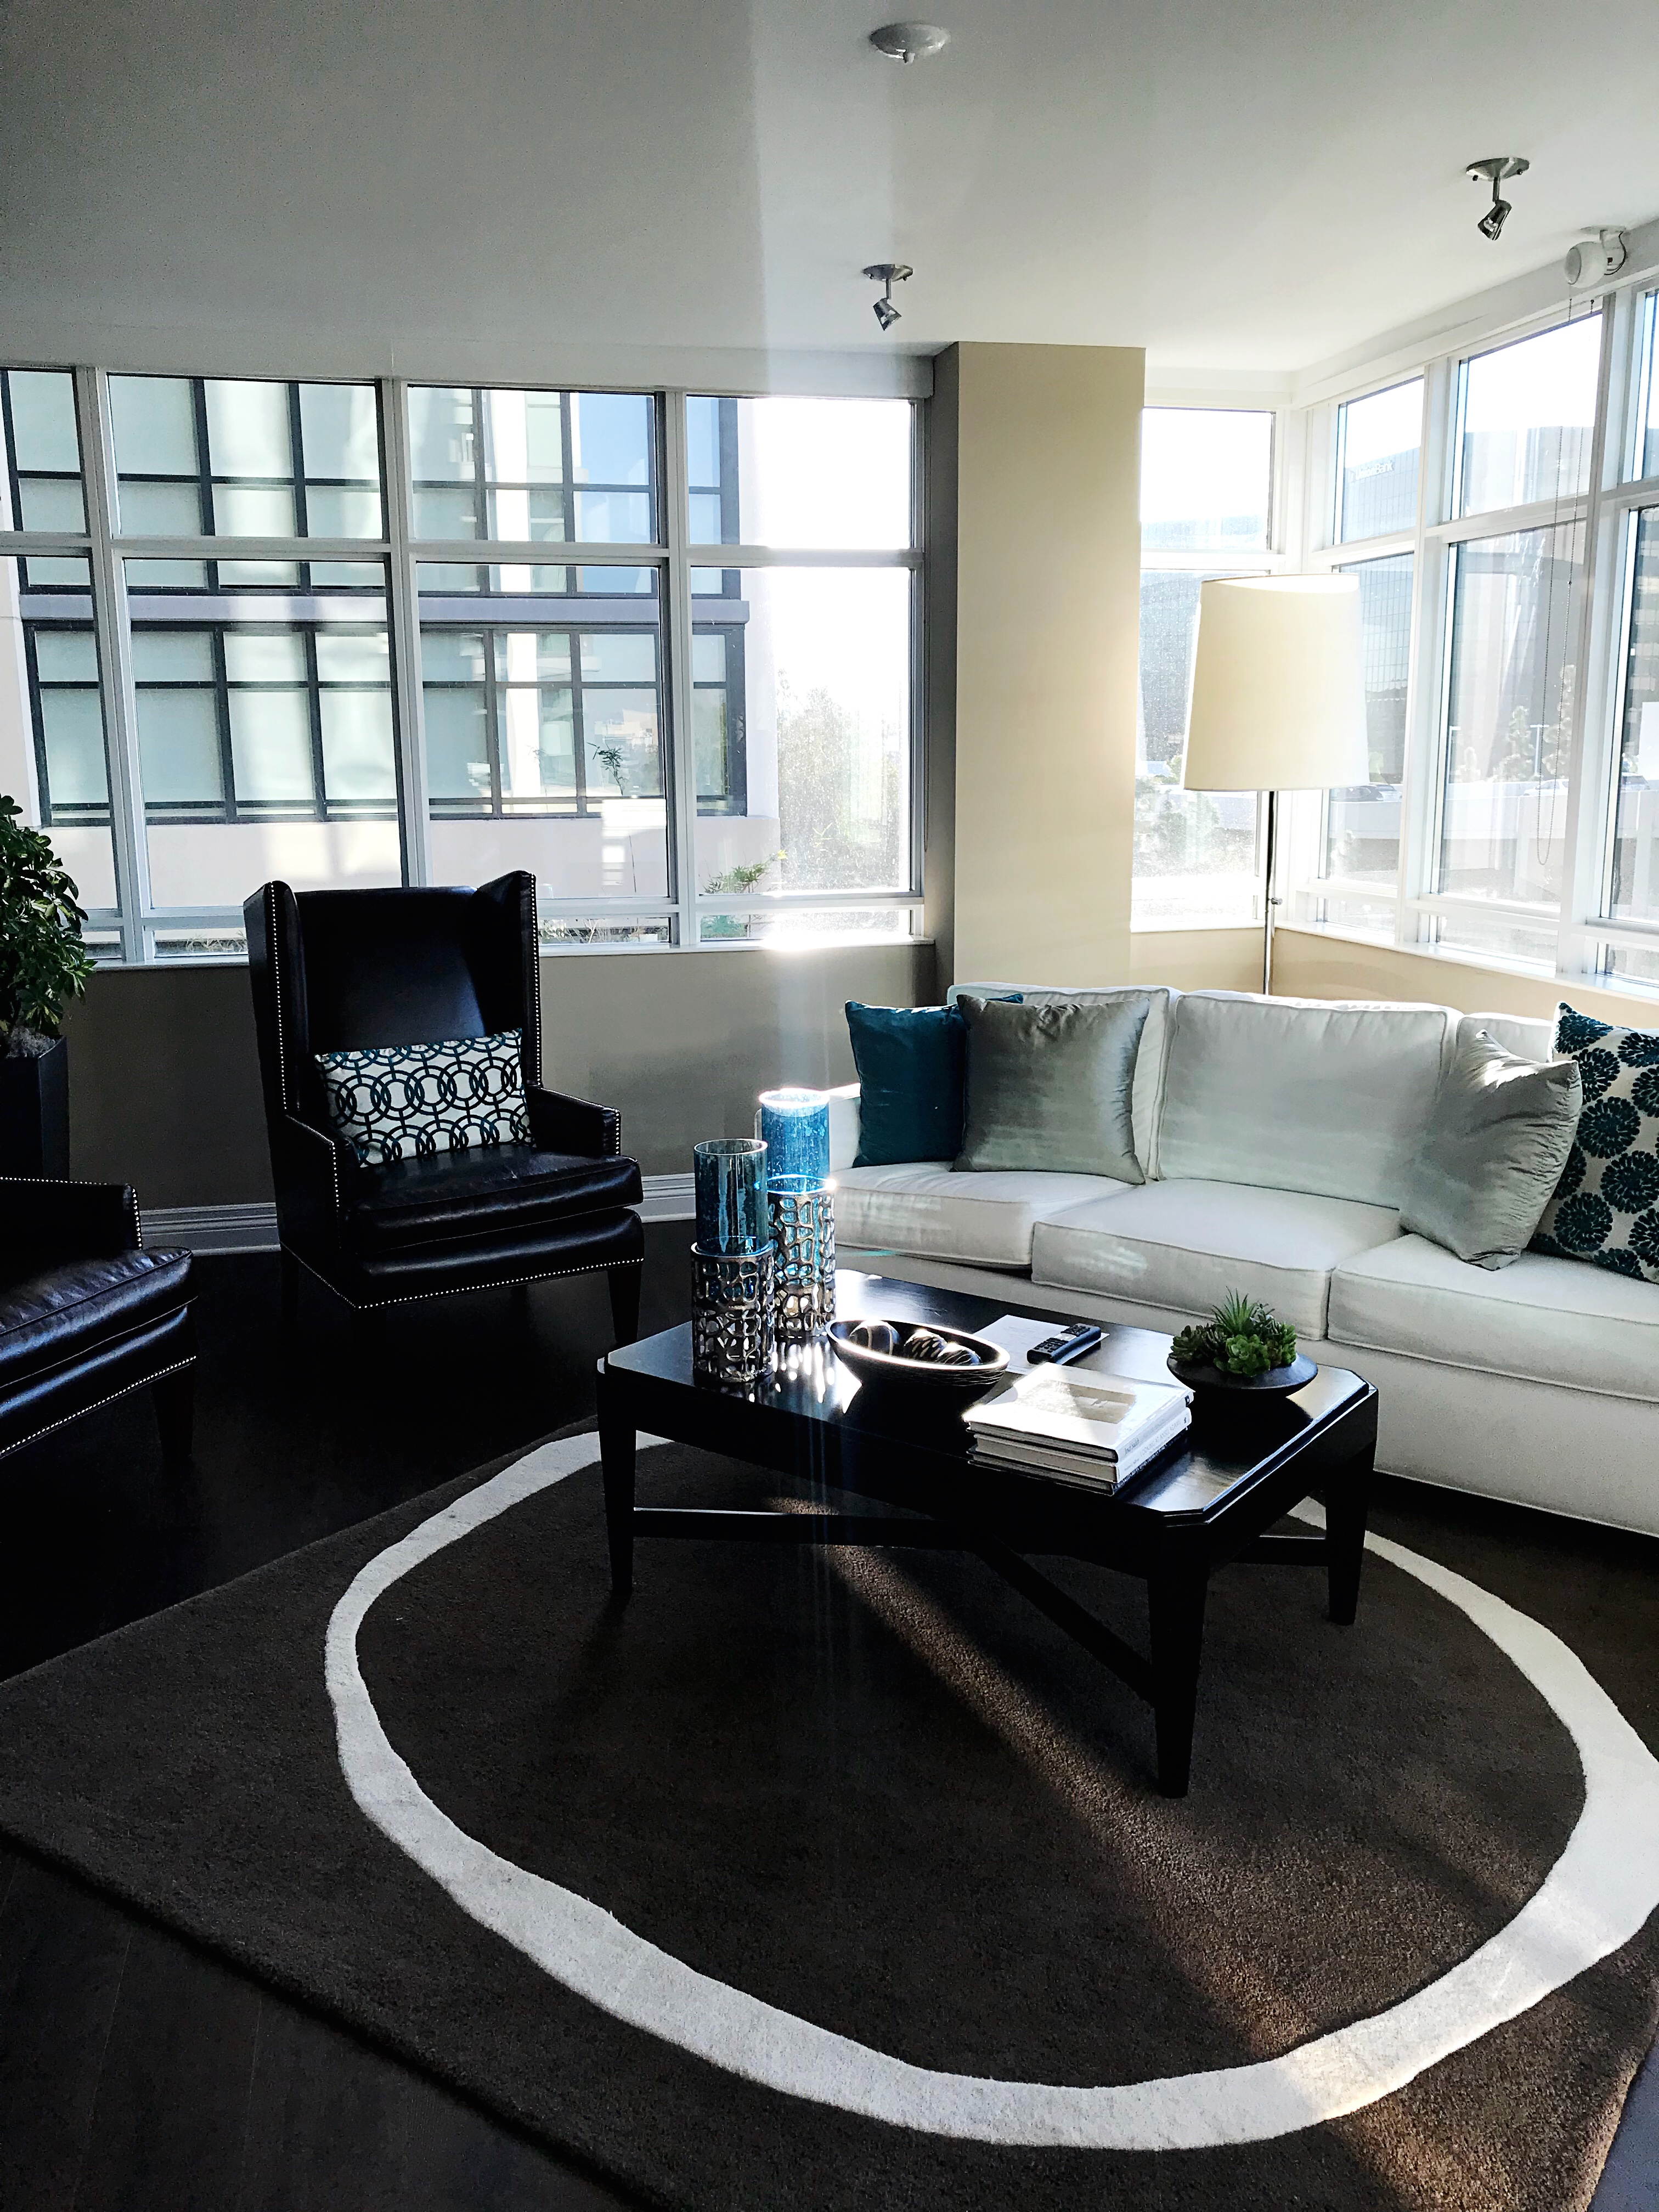 Weekend Stay at Astoria Central Park West in Irvine